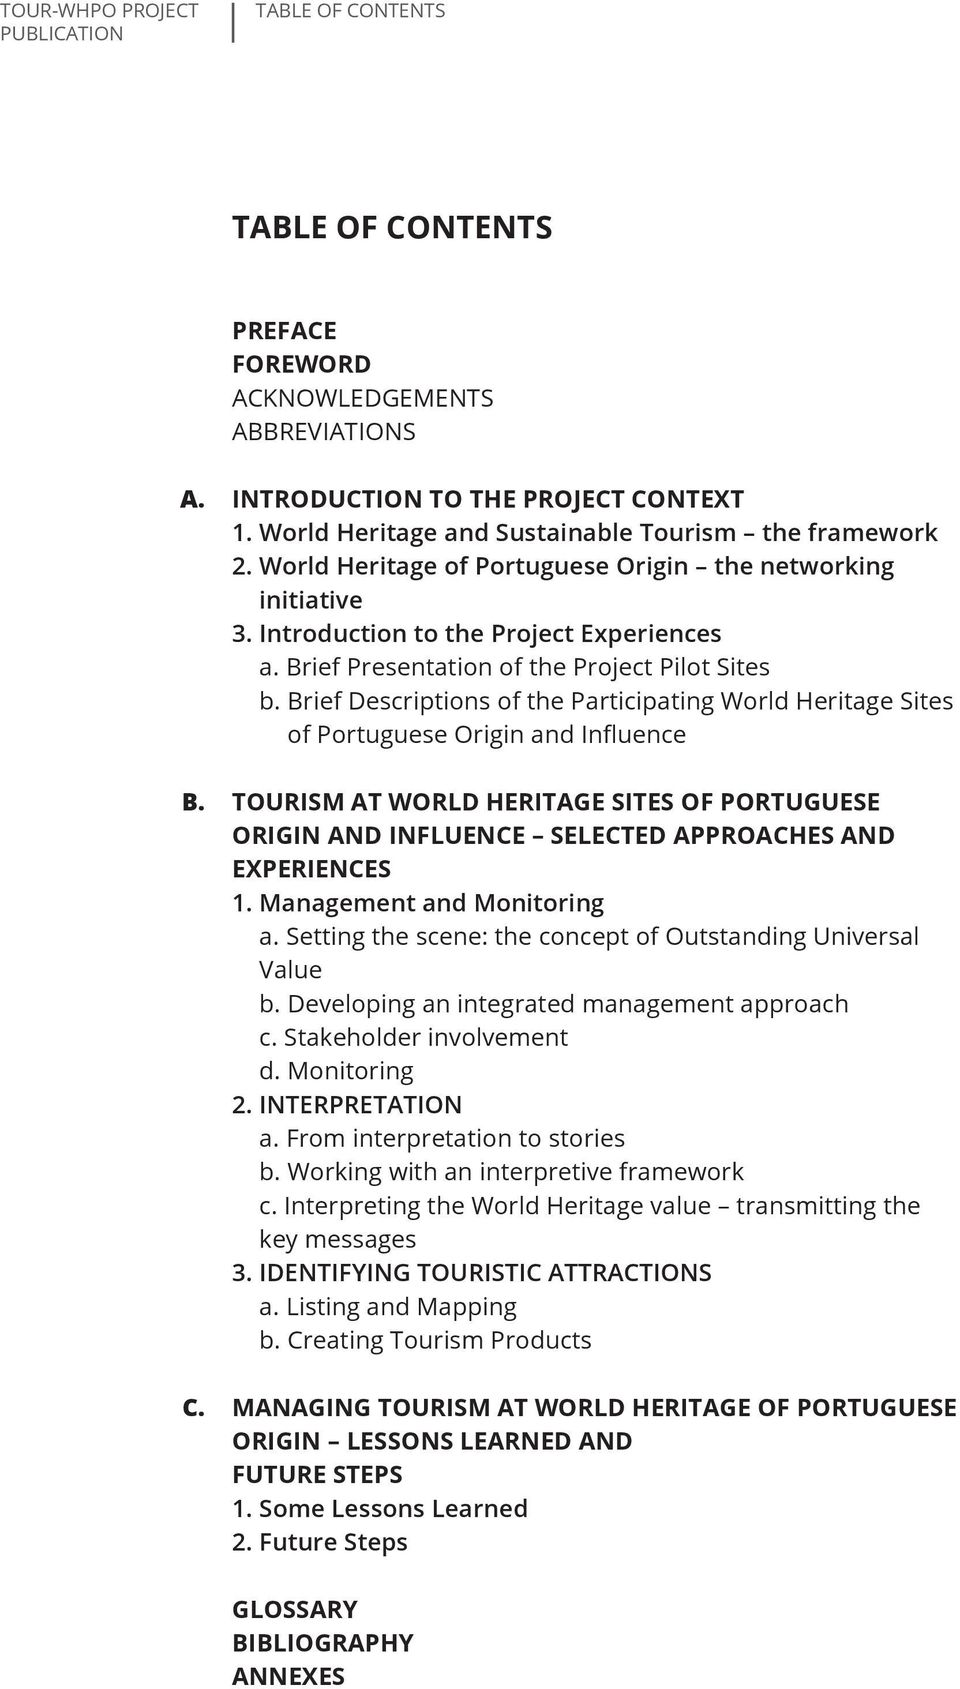 brief Descriptions of the Participating World Heritage Sites of Portuguese Origin and Influence Tourism at World Heritage Sites of Portuguese Origin and Influence selected approaches and experiences